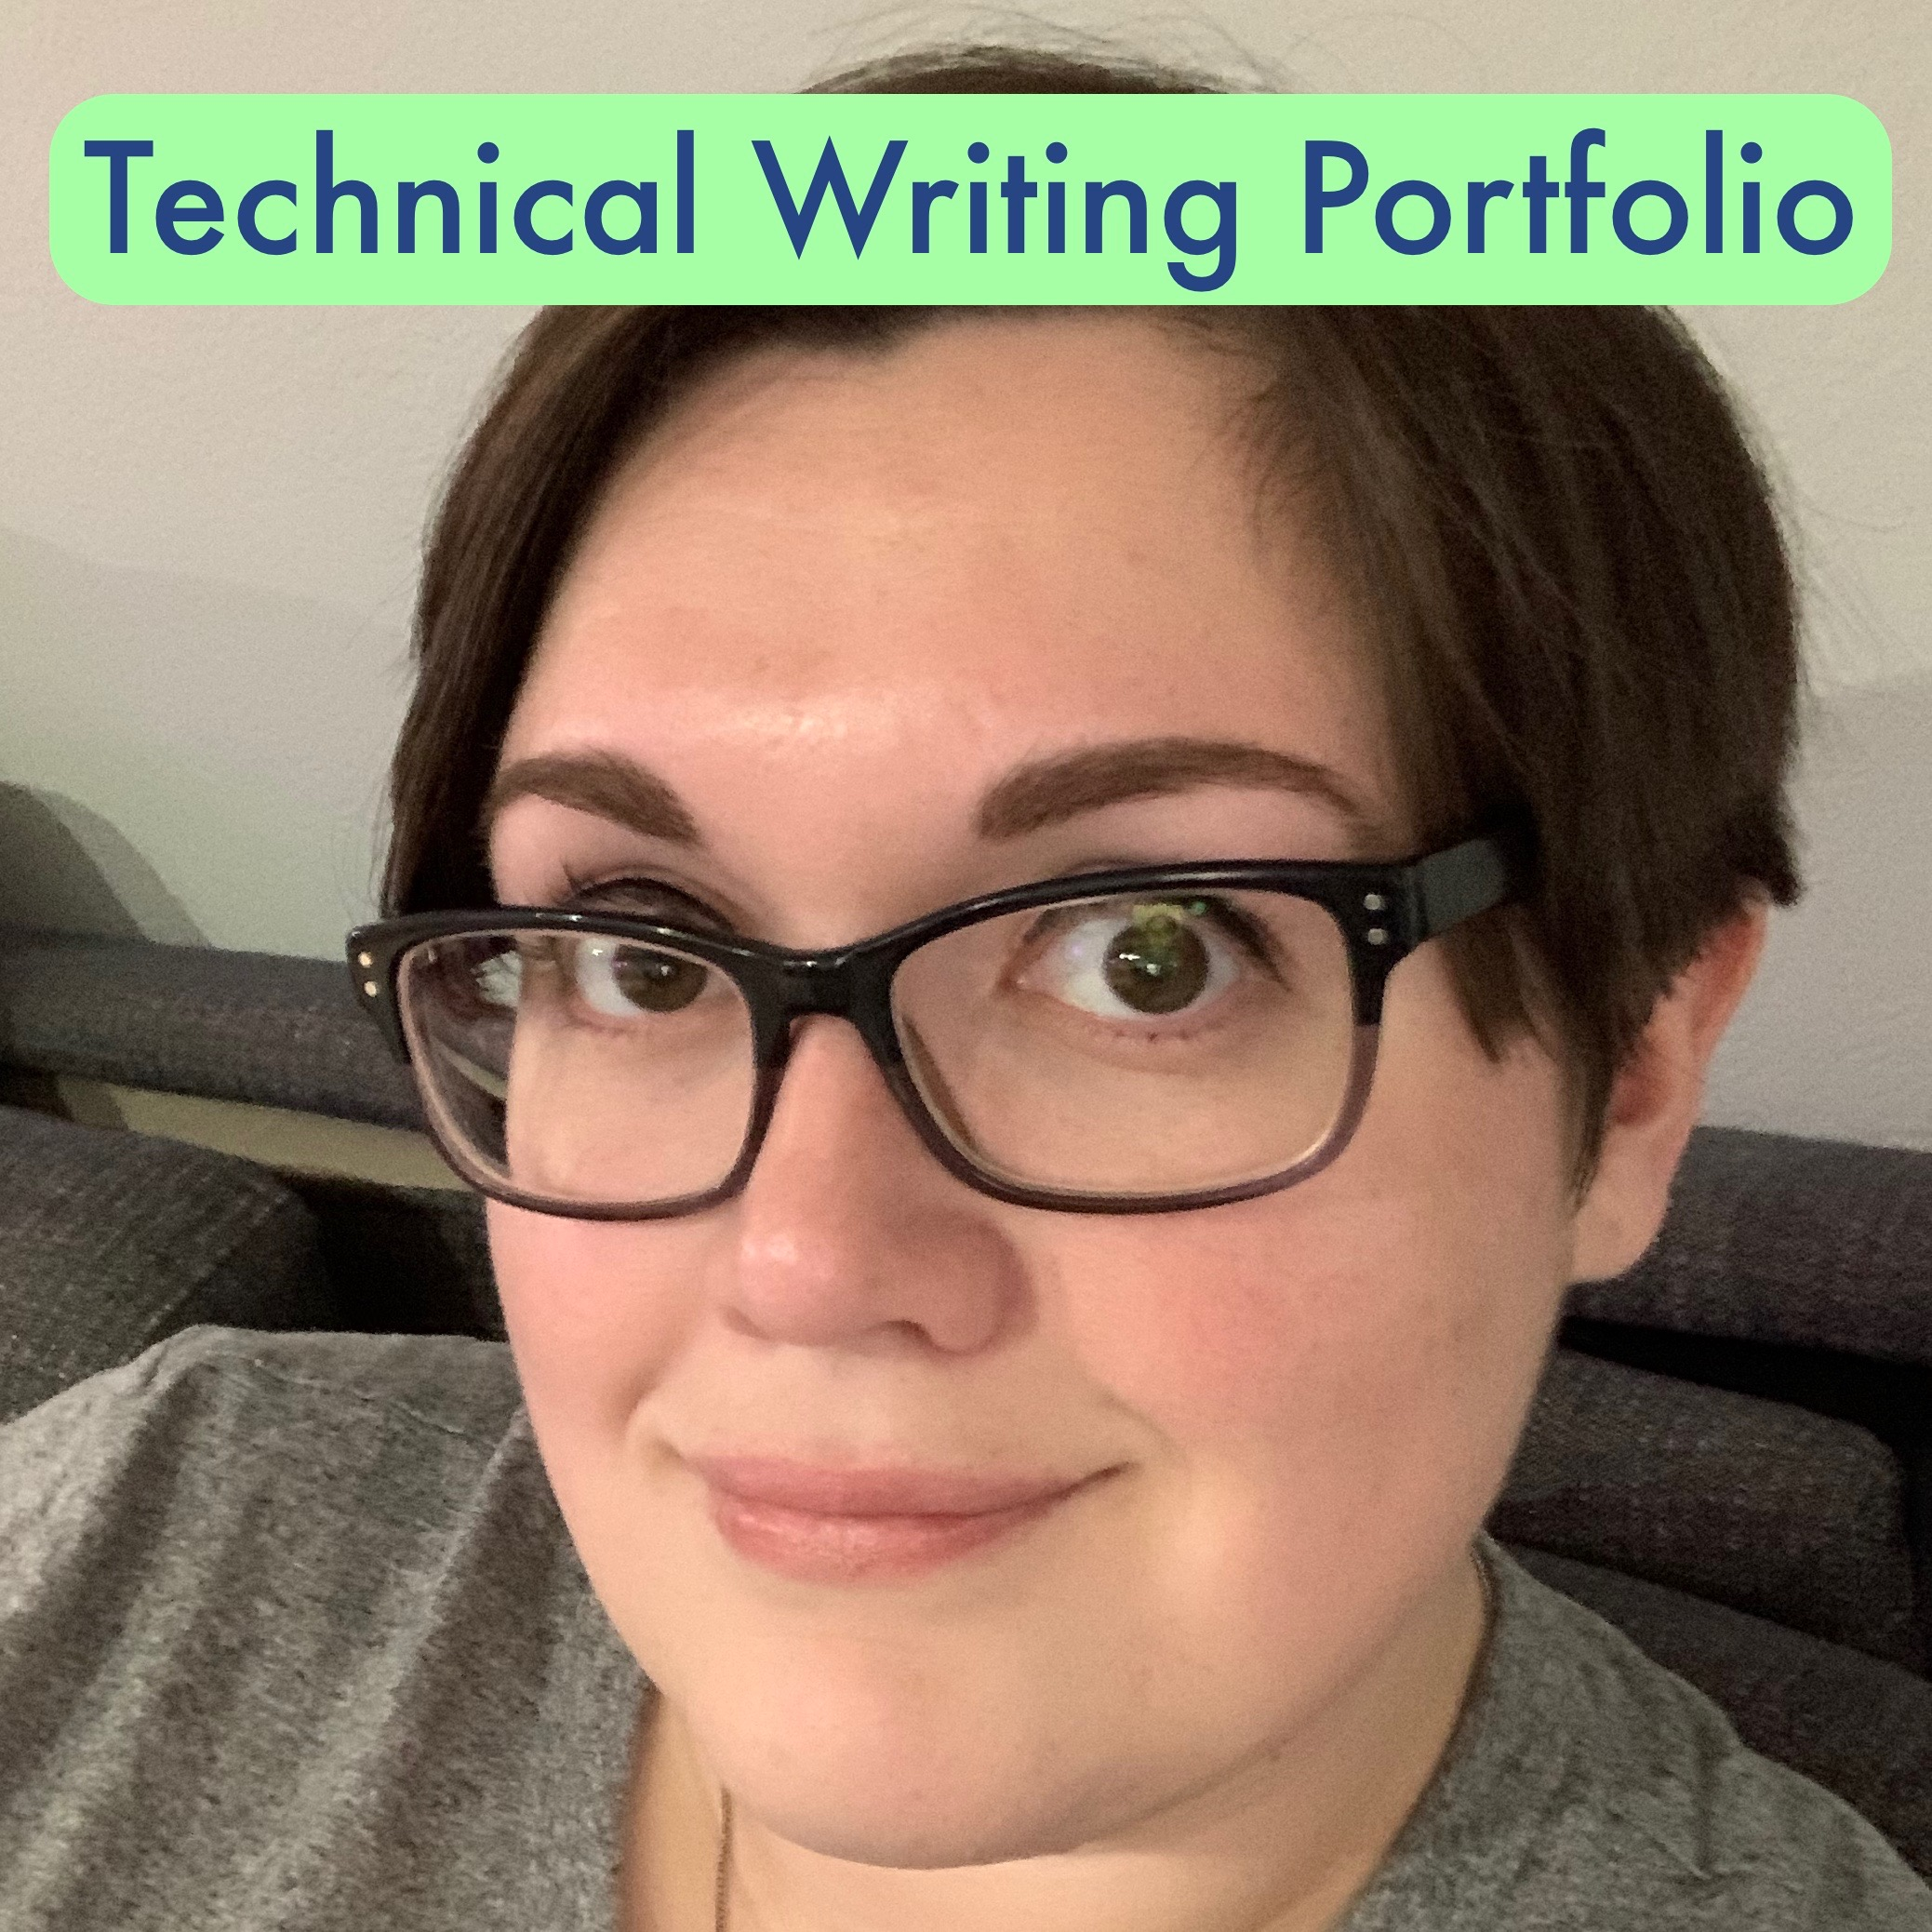 Technical Writing Portfolio